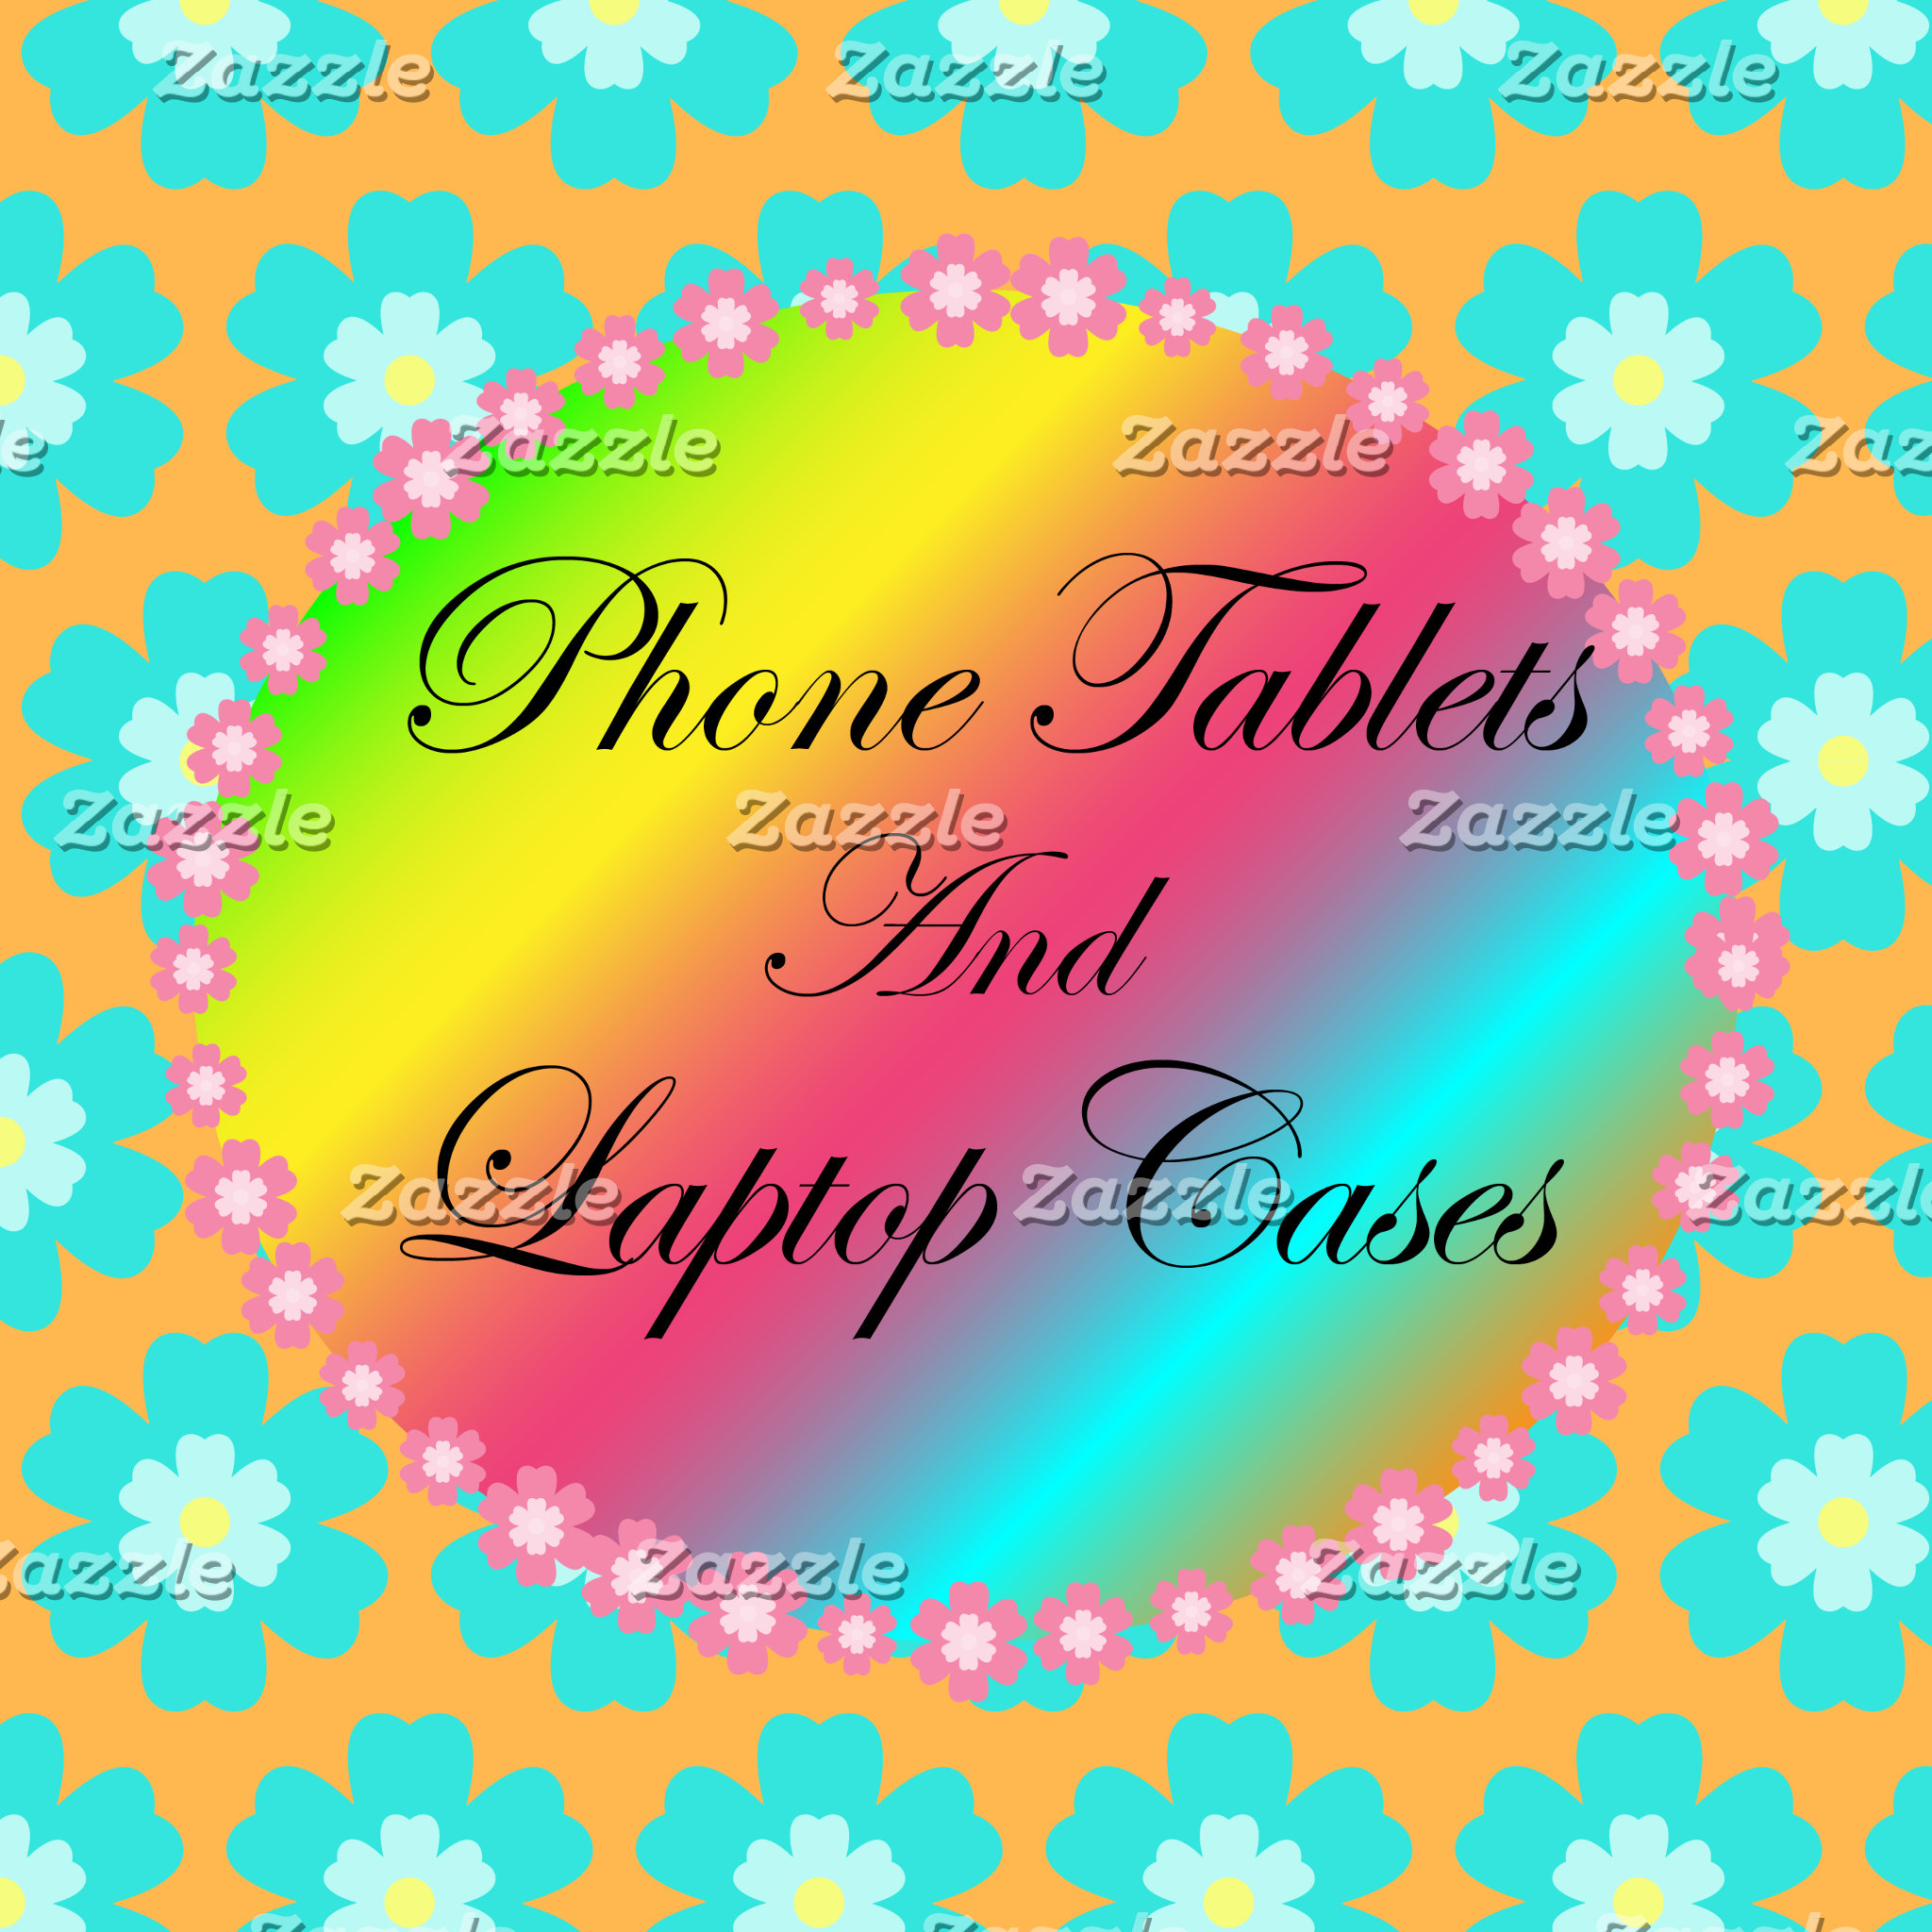 15. Phone, Tablets and Laptop Cases